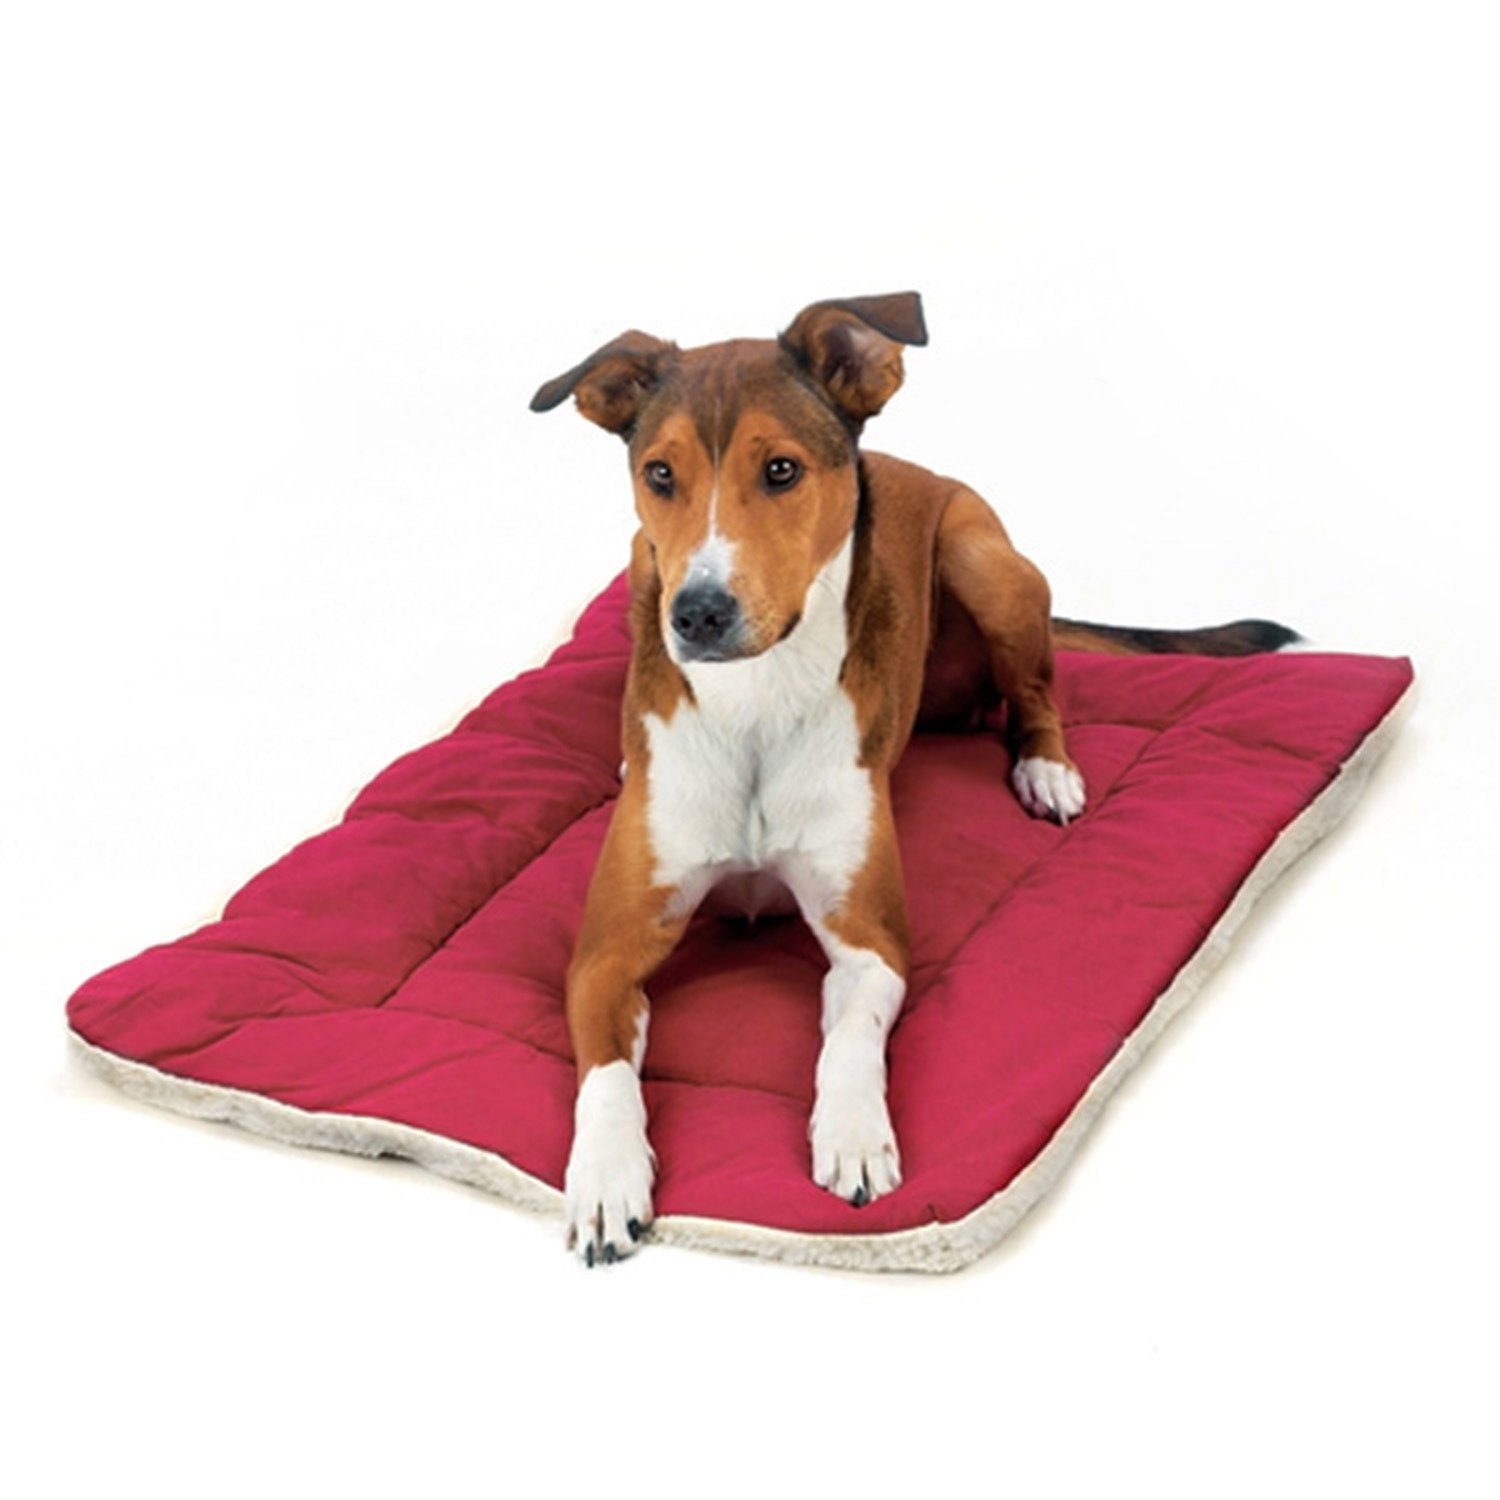 Burgundy 48-Inch Burgundy 48-Inch Pet Dreams 2 in 1 All Season Crate Bedding, XX-Large Fits Midwest 48  Crate- Burgundy Red